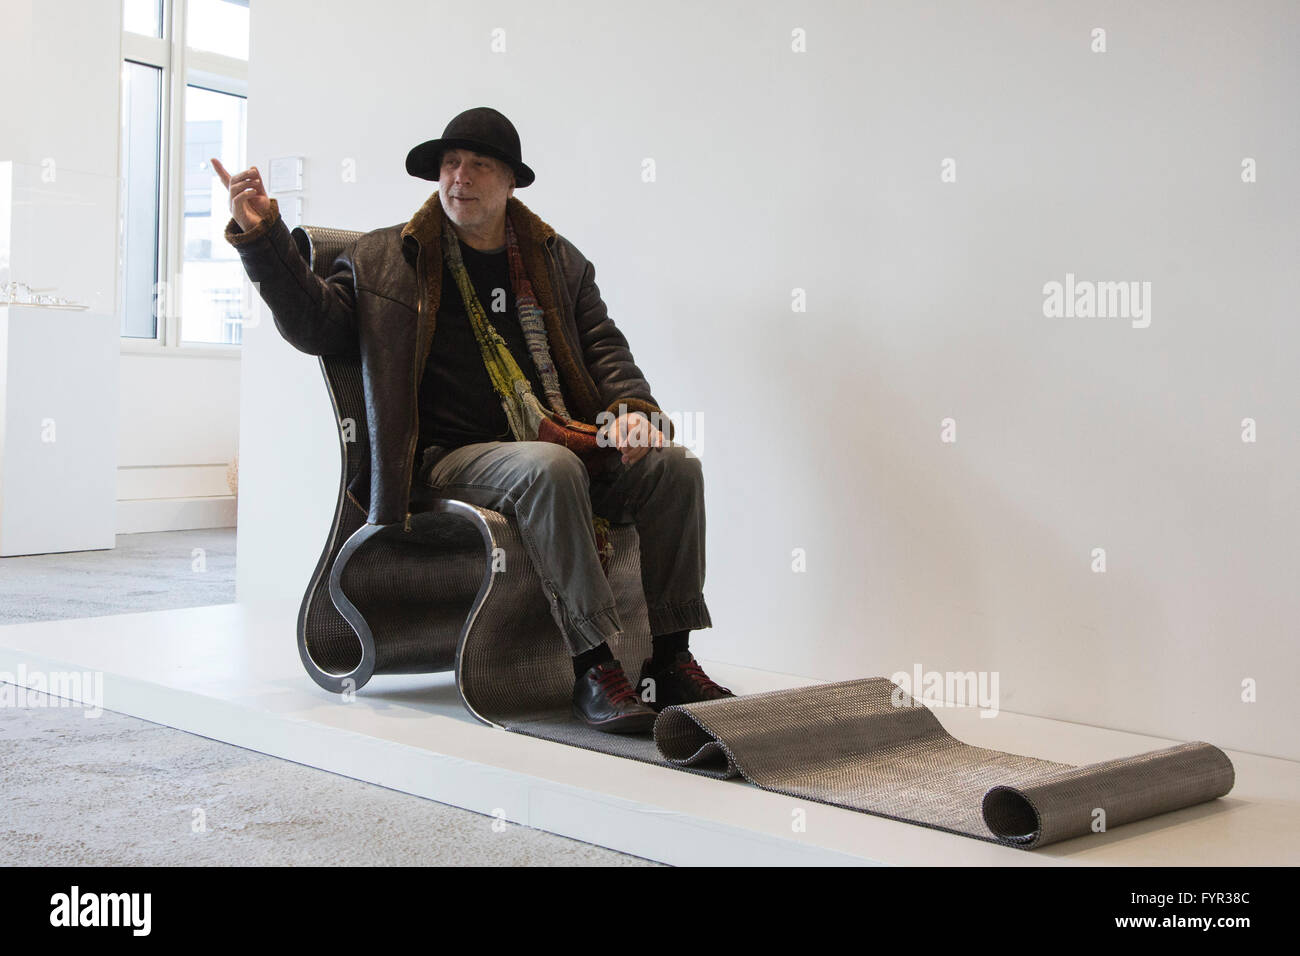 london, uk. 27 april 2016. designer ron arad sits on the important, Mobel ideea